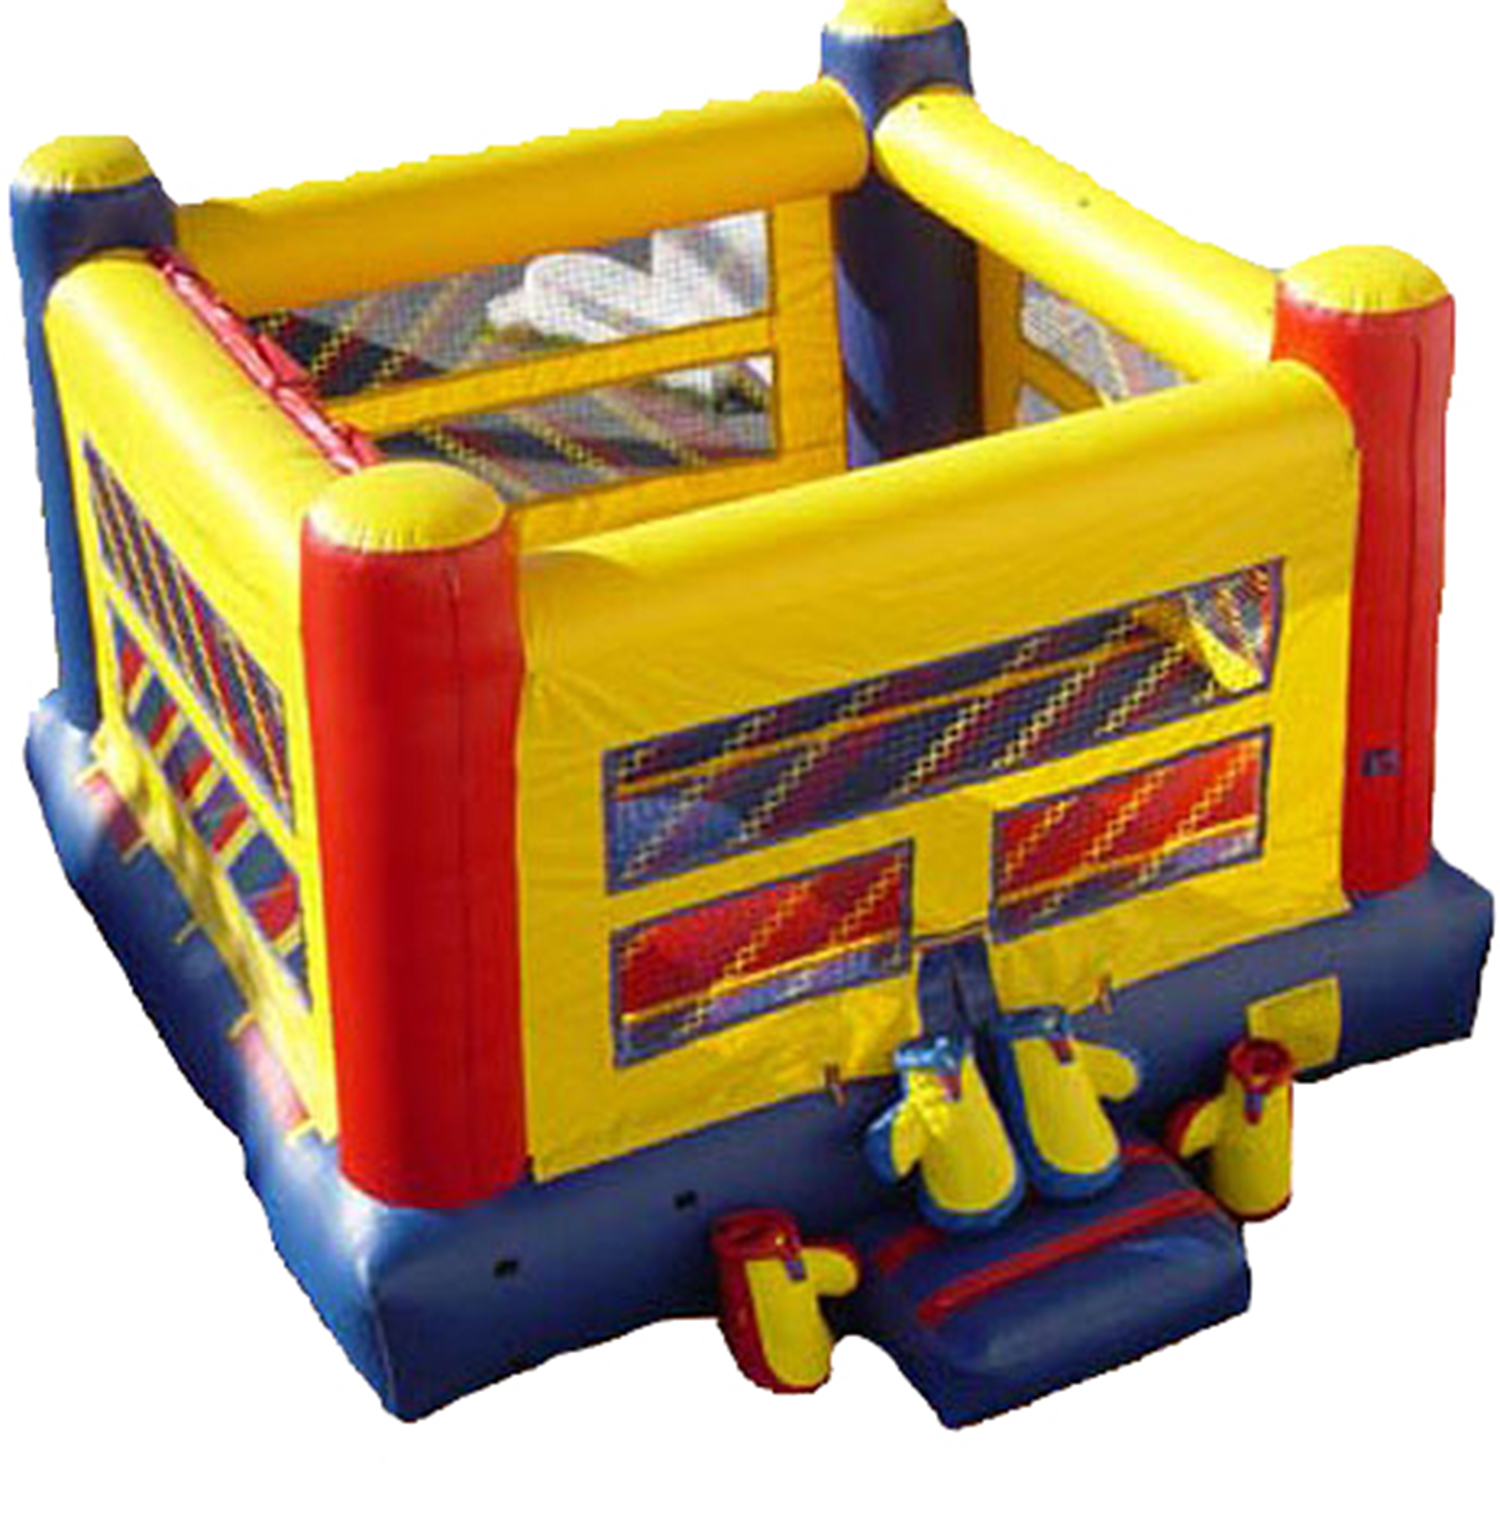 Bouncy Boxing Ring with Oversized Gloves2.jpg